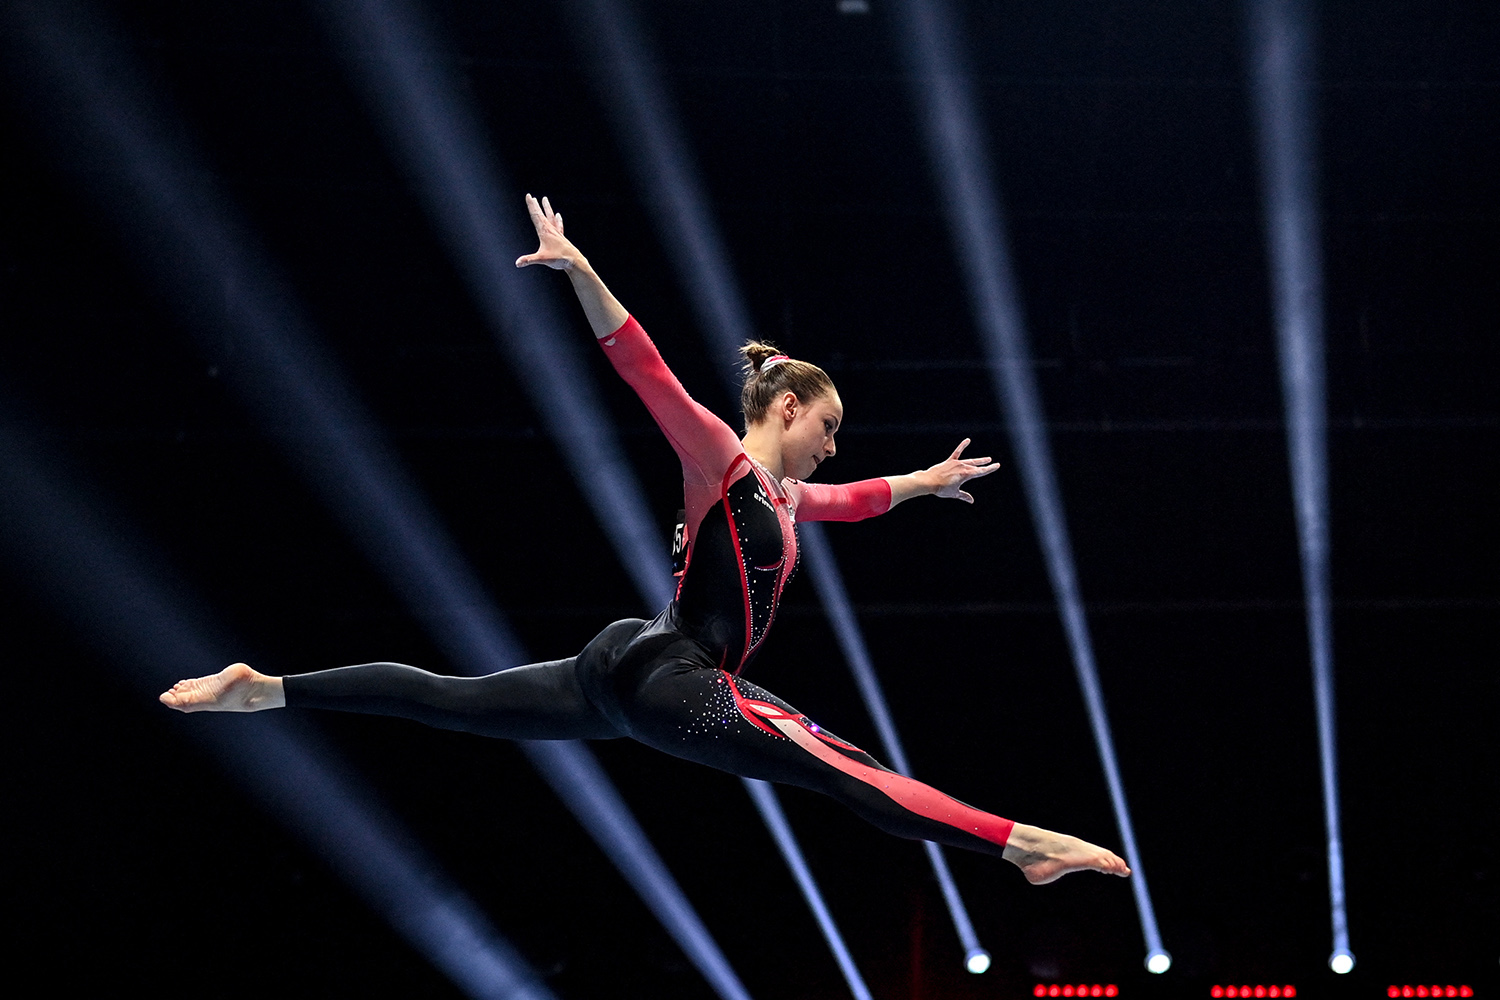 Germany's Sarah Voss wears a full bodysuit while competing in the women's beam qualifications during European Artistic Gymnastics Championships in Basel, on April 21.